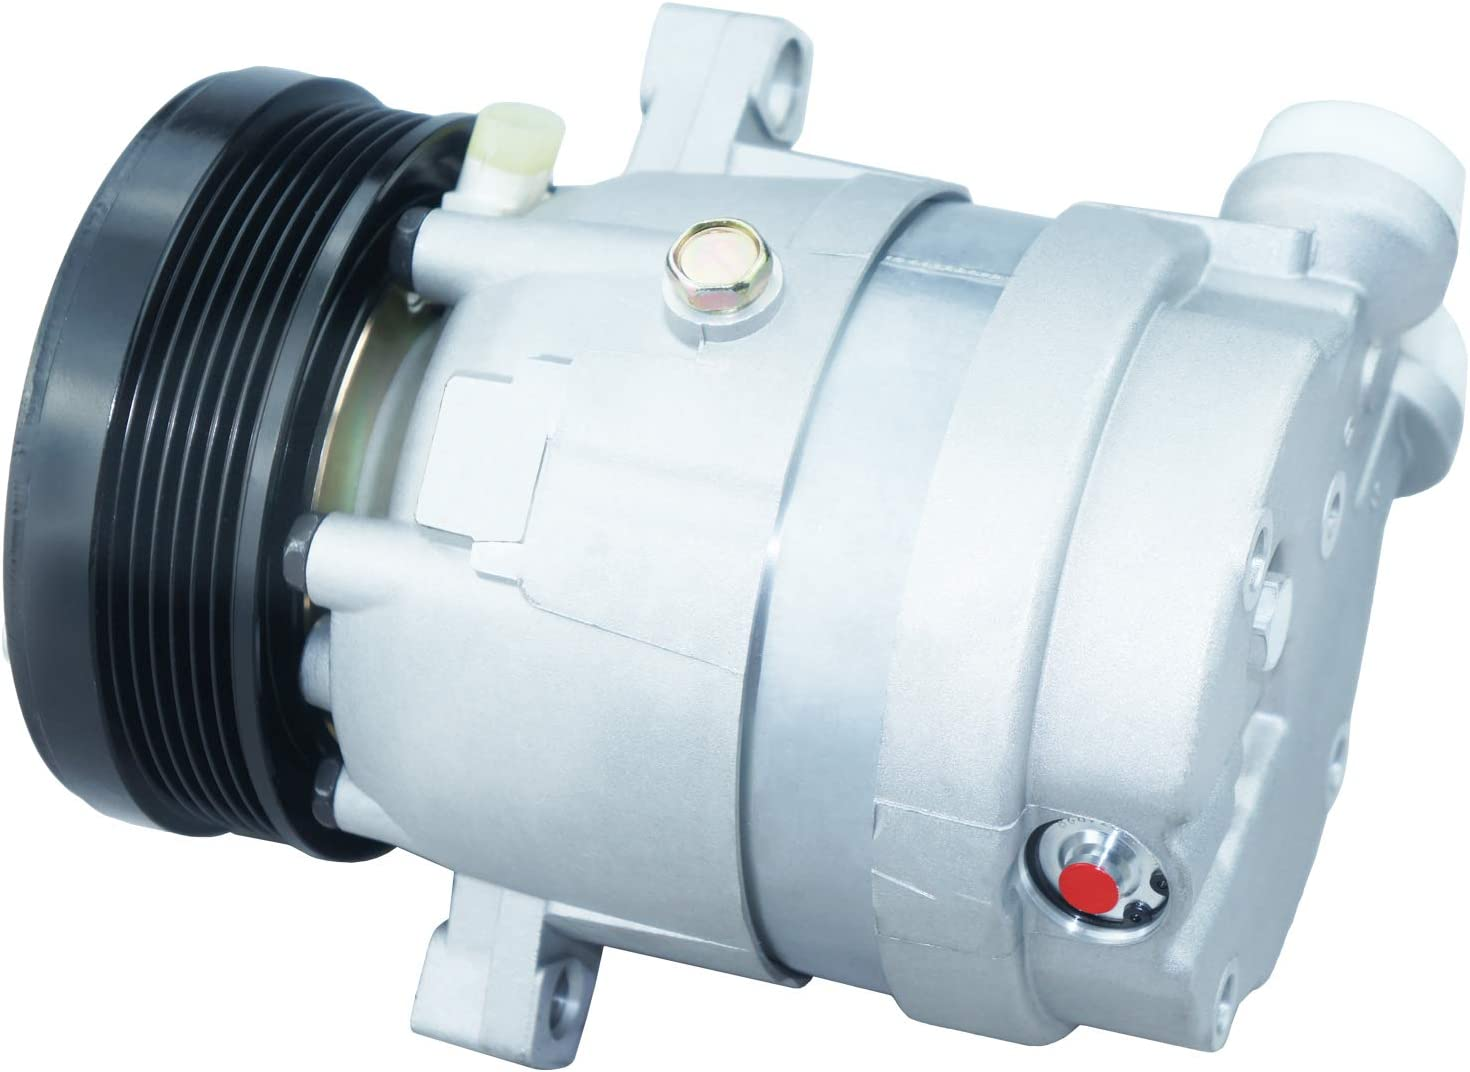 Kucaruce 1pc A C Compressor wholesale Clutch 1854031 with 1854008 # OFFicial store 1854